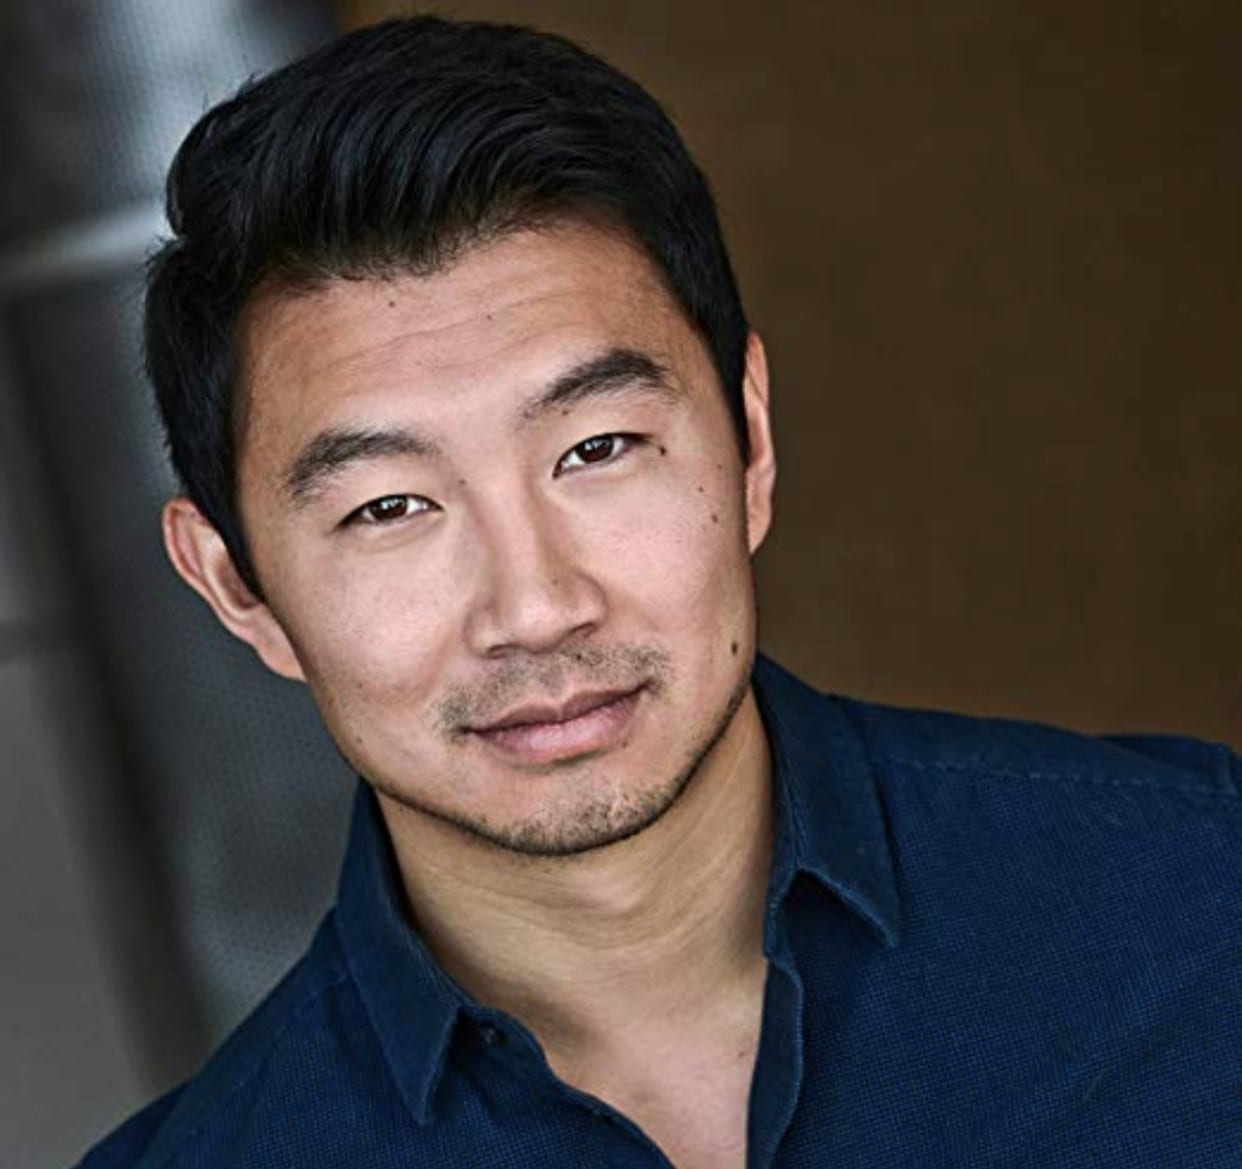 HarperCollins acquires forthcoming memoir by Kim's Convenience star Simu Liu | Quill and Quire